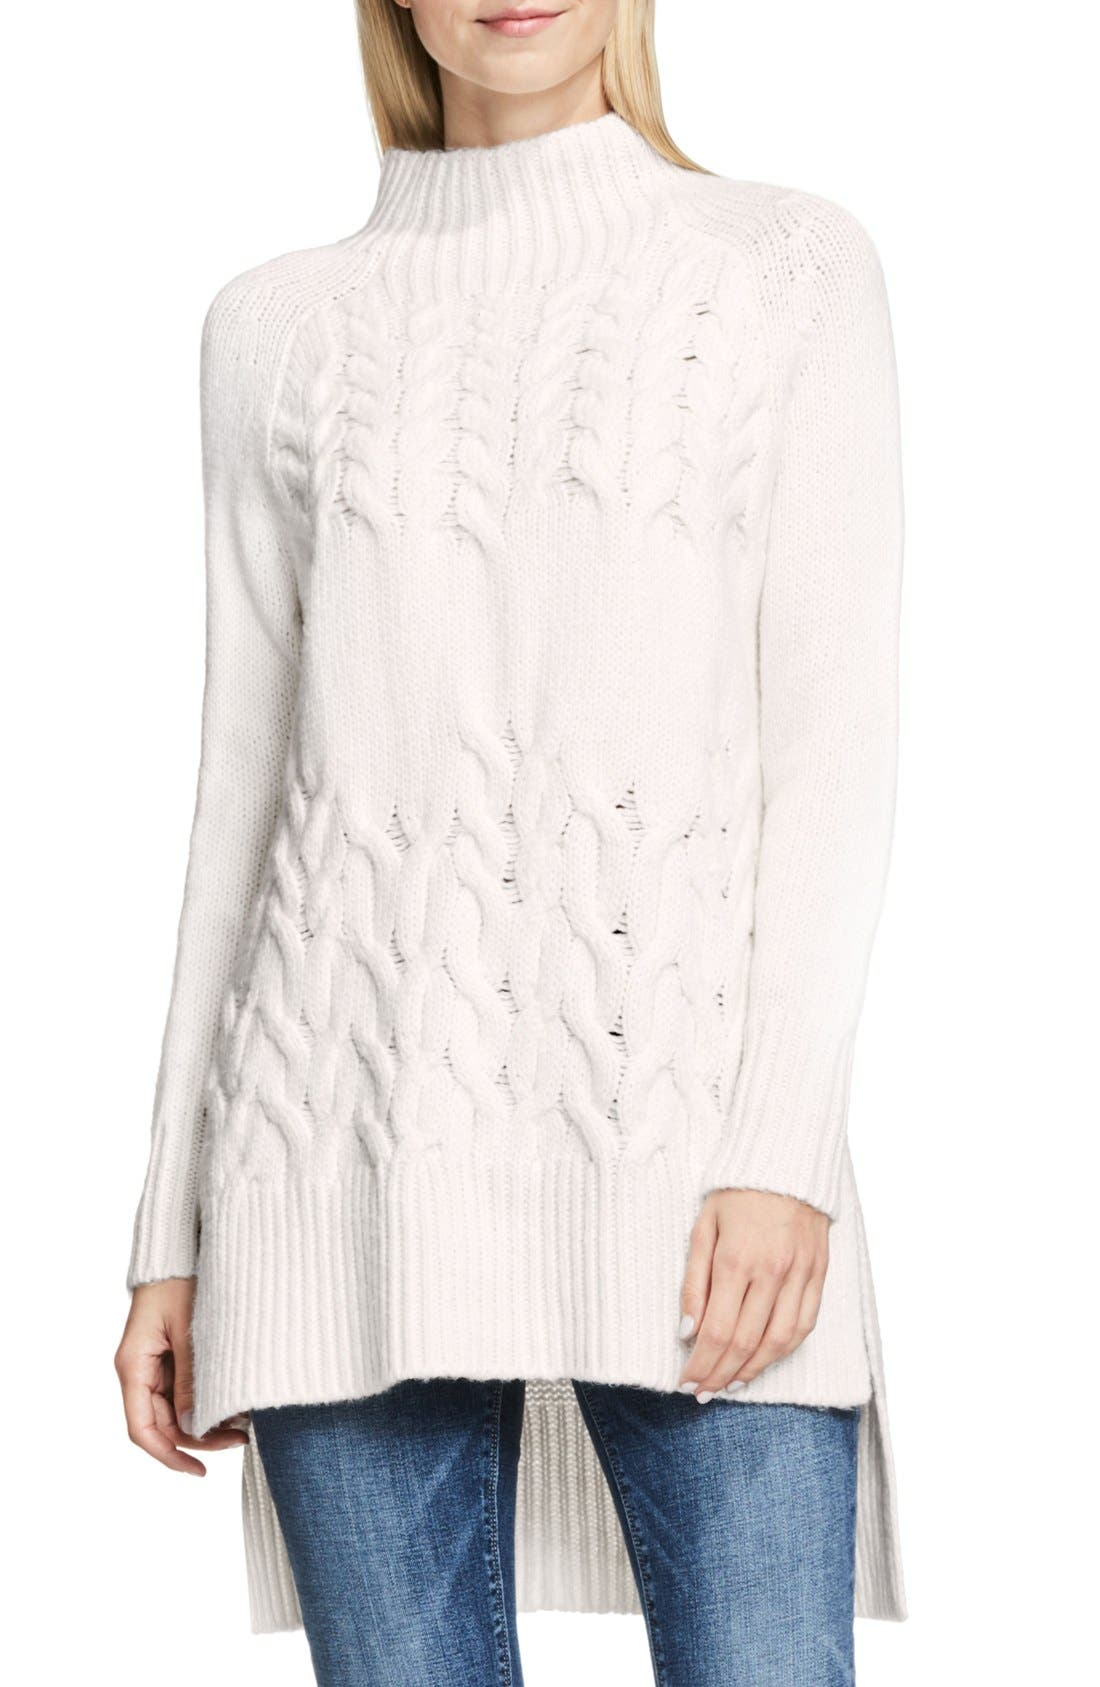 Alternate Image 1 Selected - Two by Vince Camuto Mock Neck Tunic Sweater